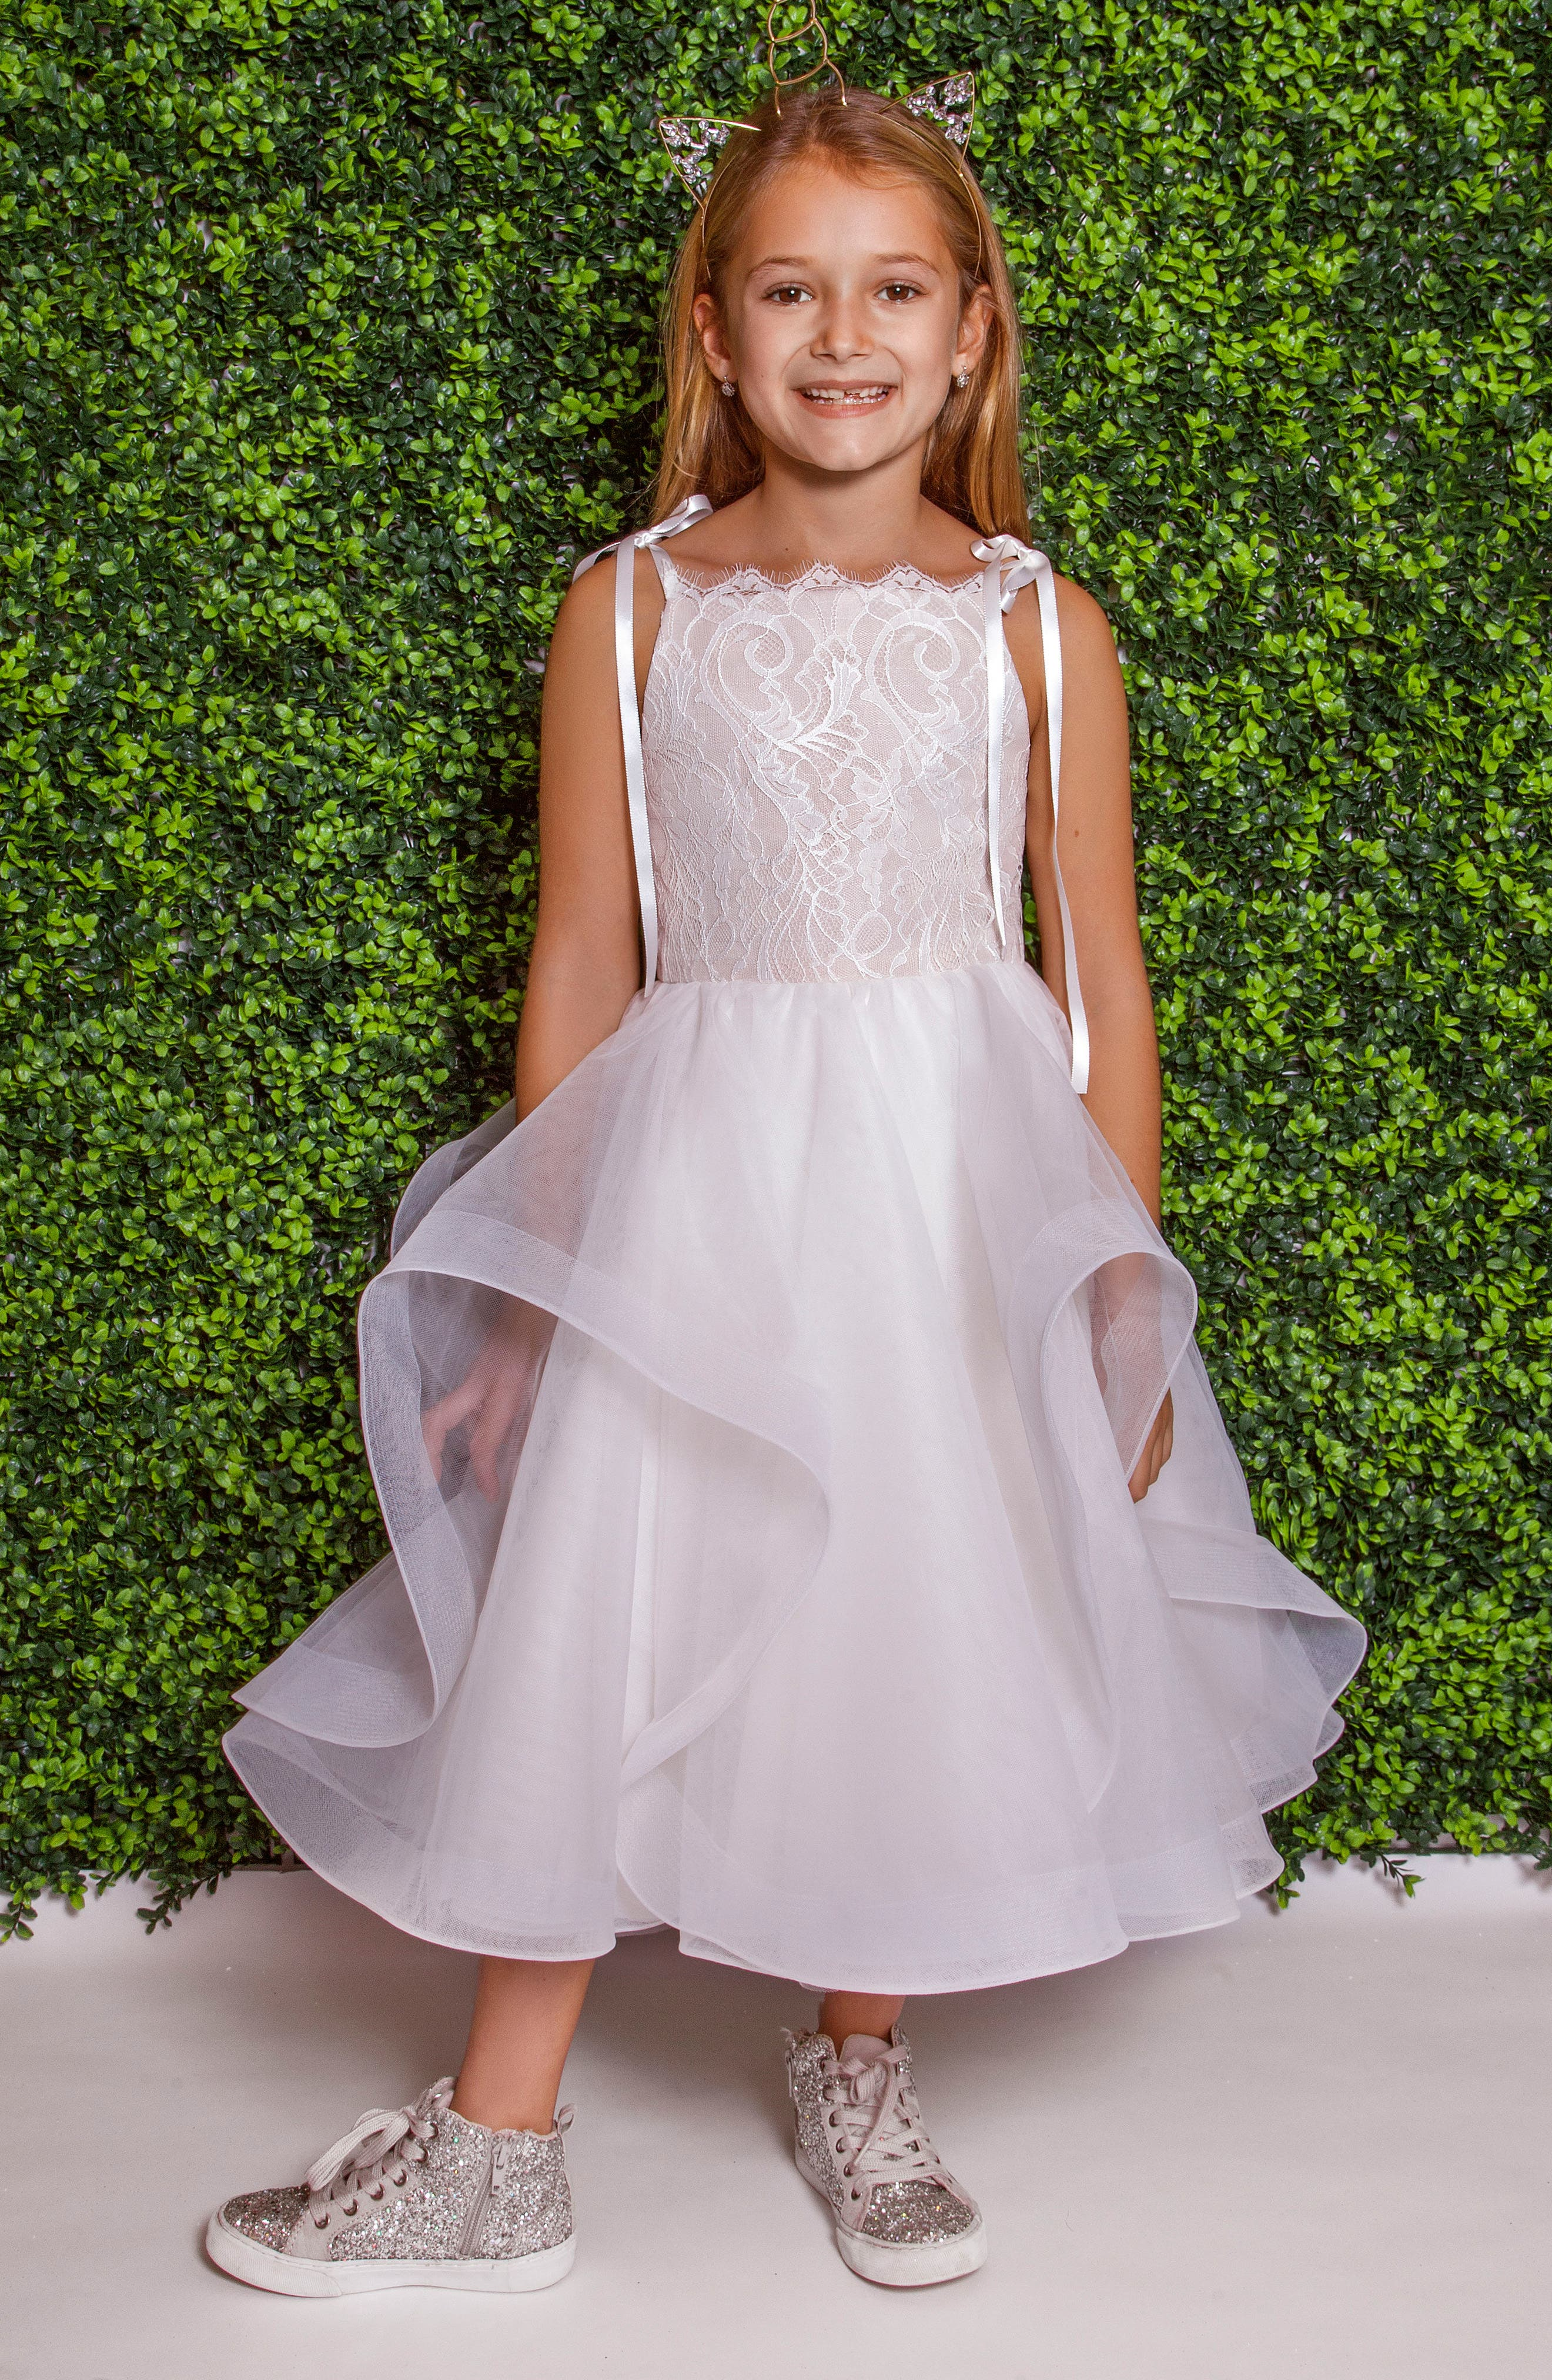 Lilian Lace & Tulle Flower Girl Dress,                             Main thumbnail 1, color,                             Ivory/Cashmere